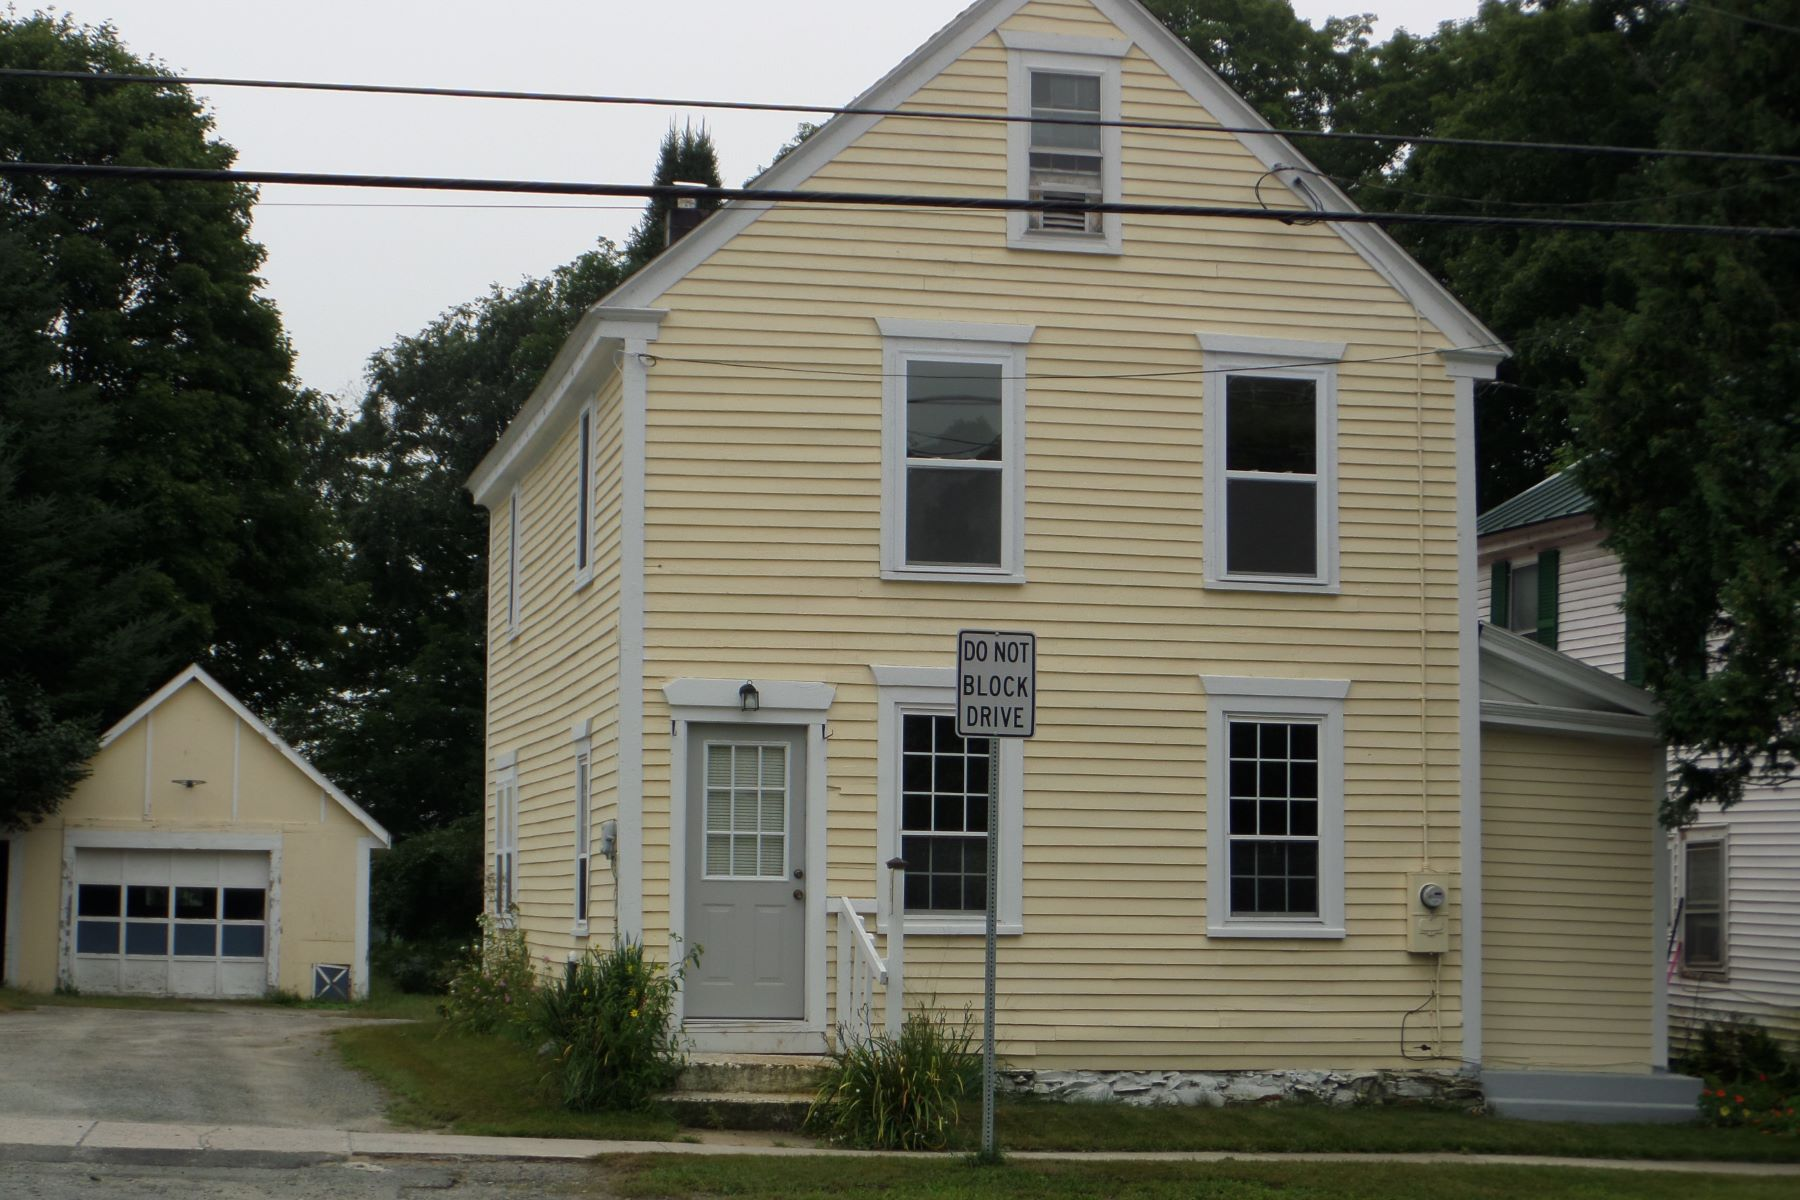 single family homes for Sale at Three Bedroom Colonial in Newbury 4999 Main St Newbury, Vermont 05051 United States